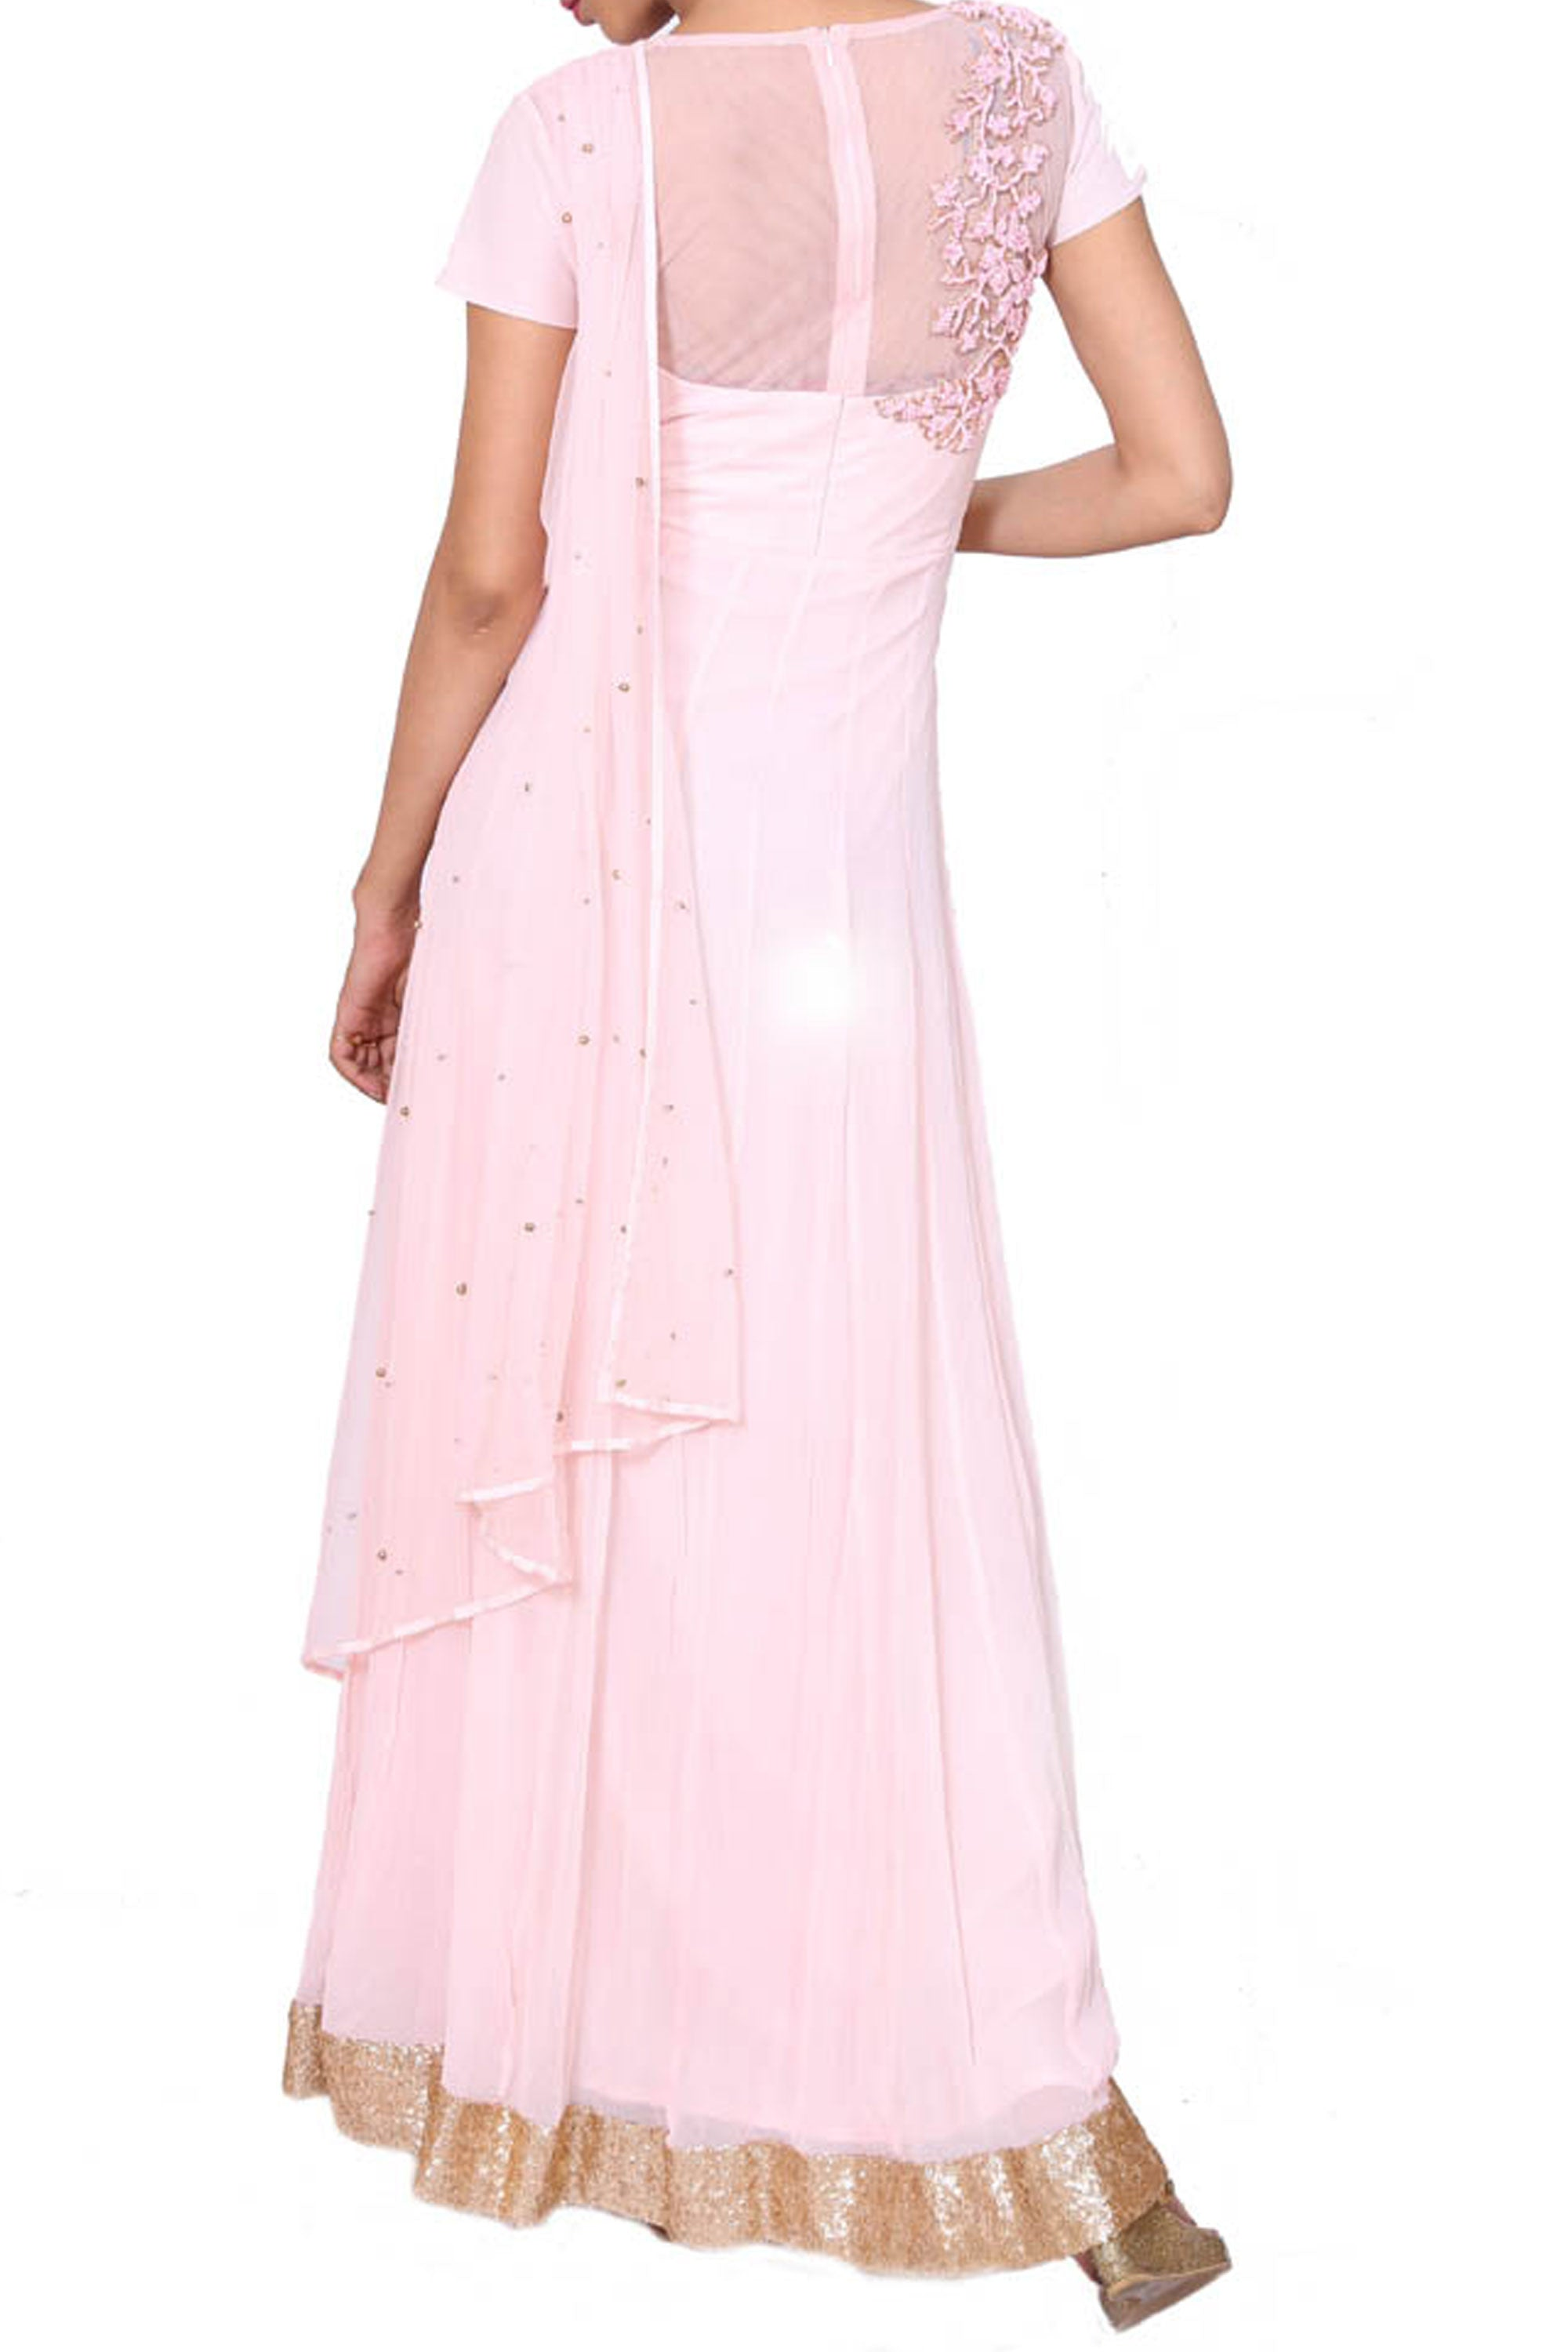 Intricately Embroidered Powdery Pink Gown Back